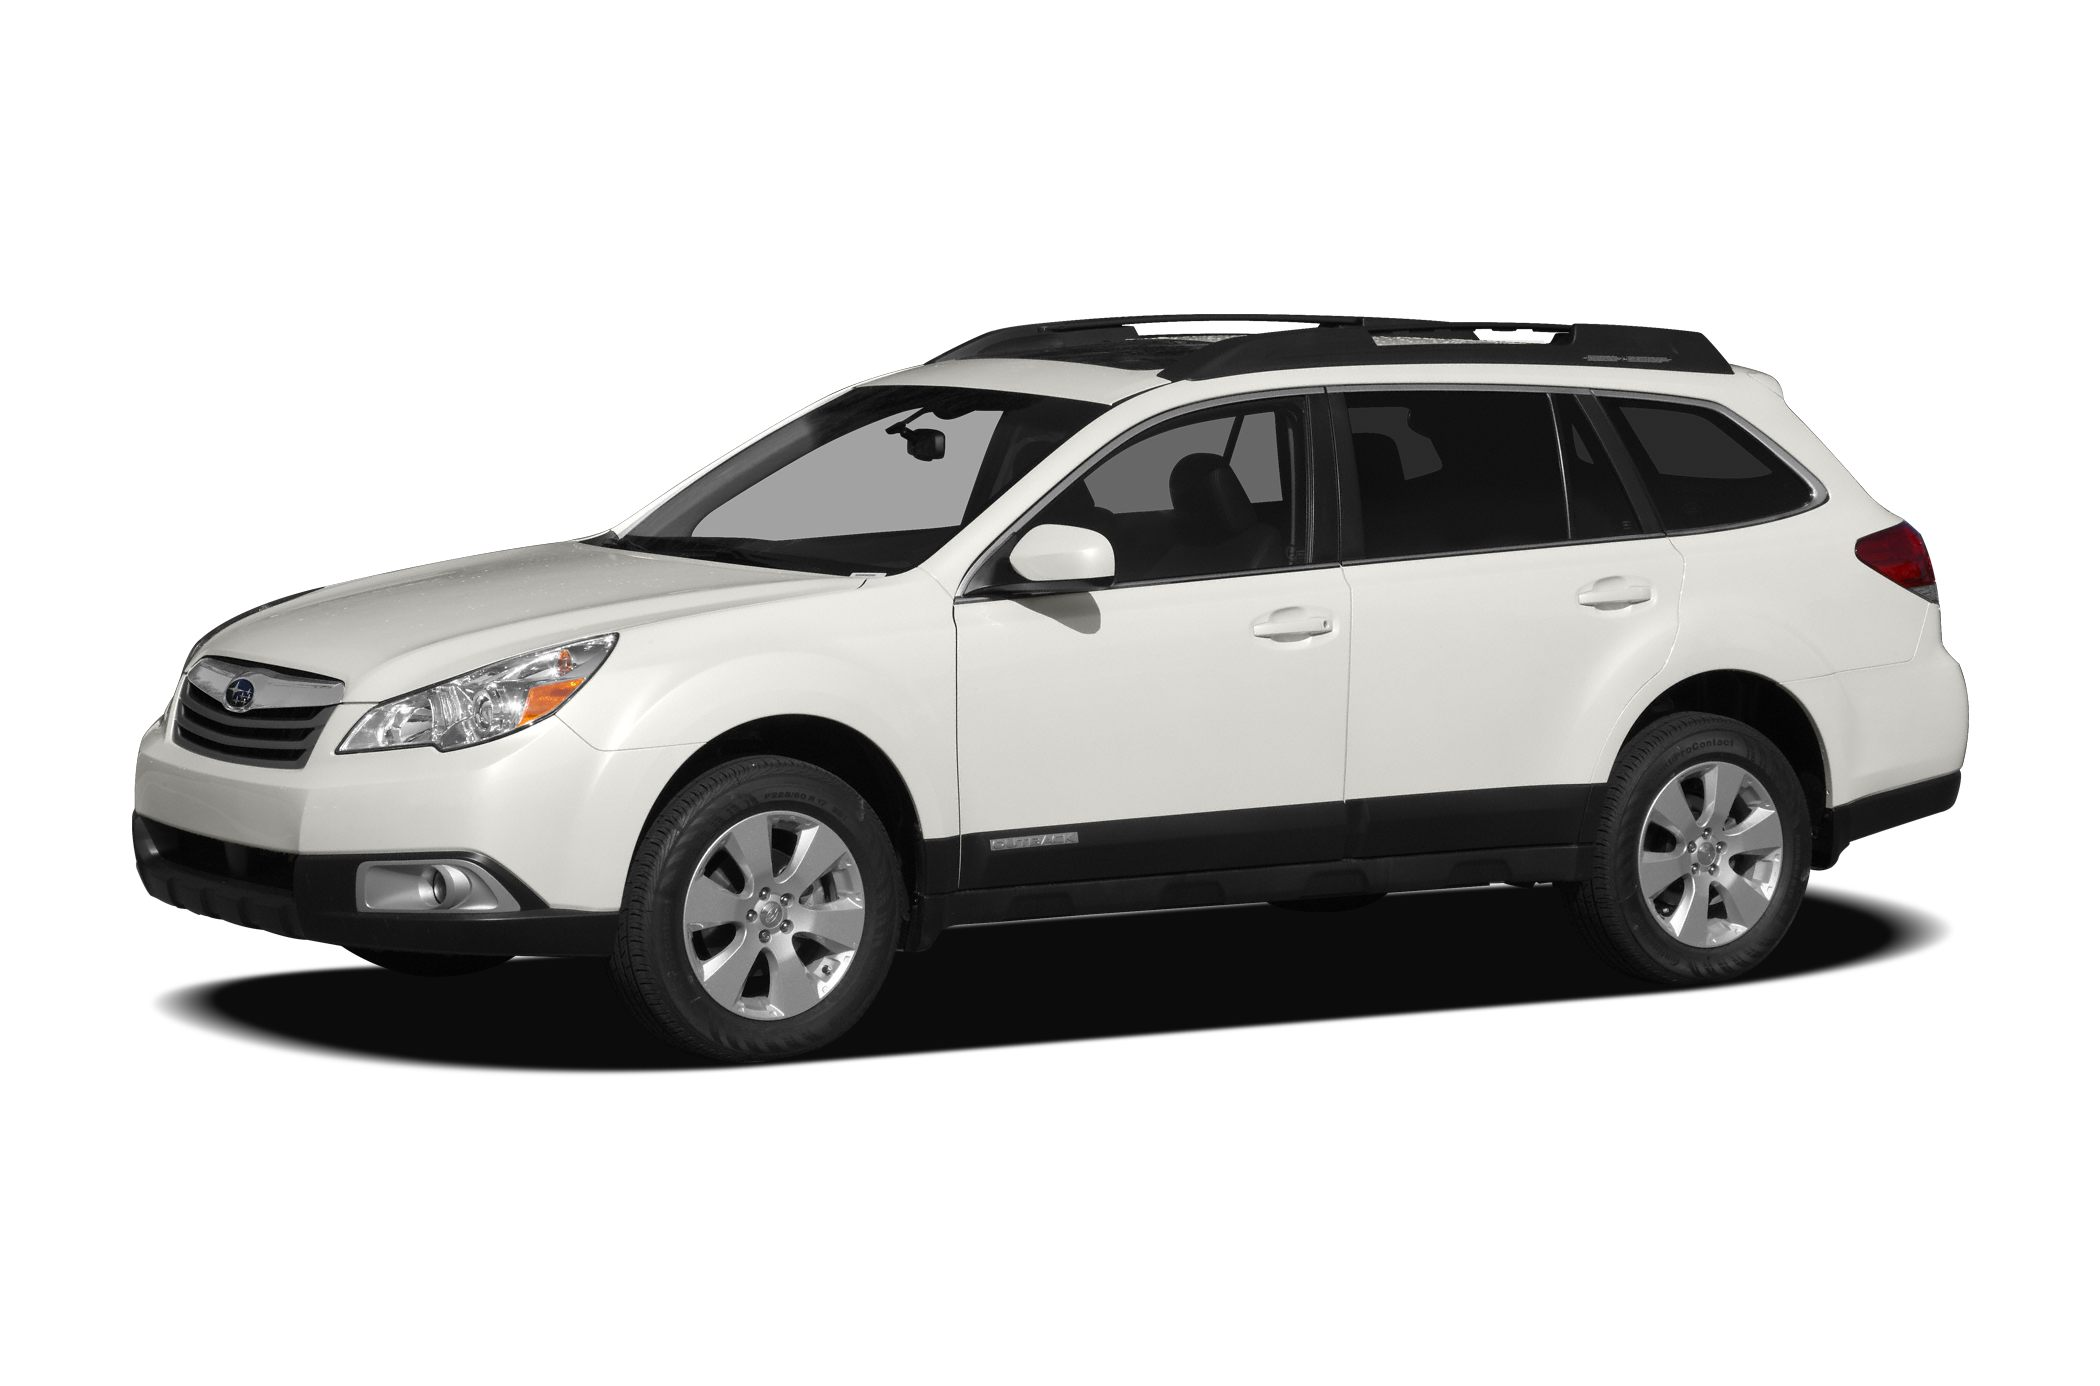 2011 Subaru Outback 2.5 I Premium Wagon for sale in La Porte for $0 with 62,827 miles